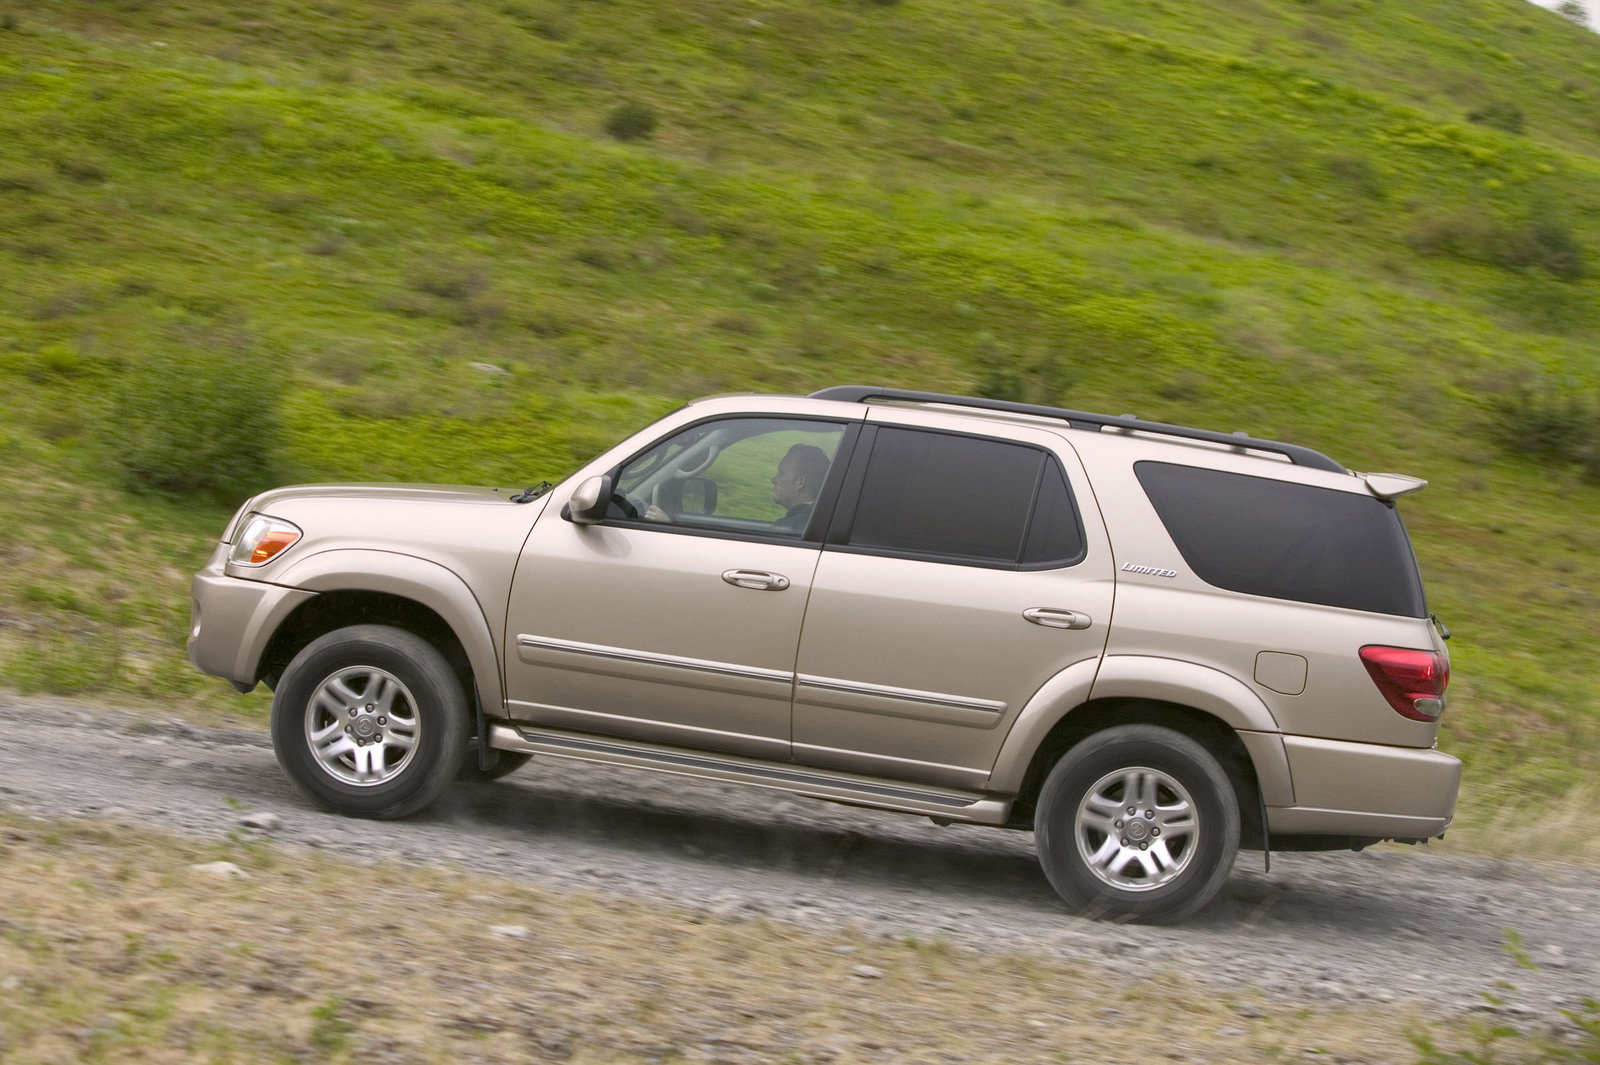 2006 toyota sequoia picture 93060 car review top speed. Black Bedroom Furniture Sets. Home Design Ideas